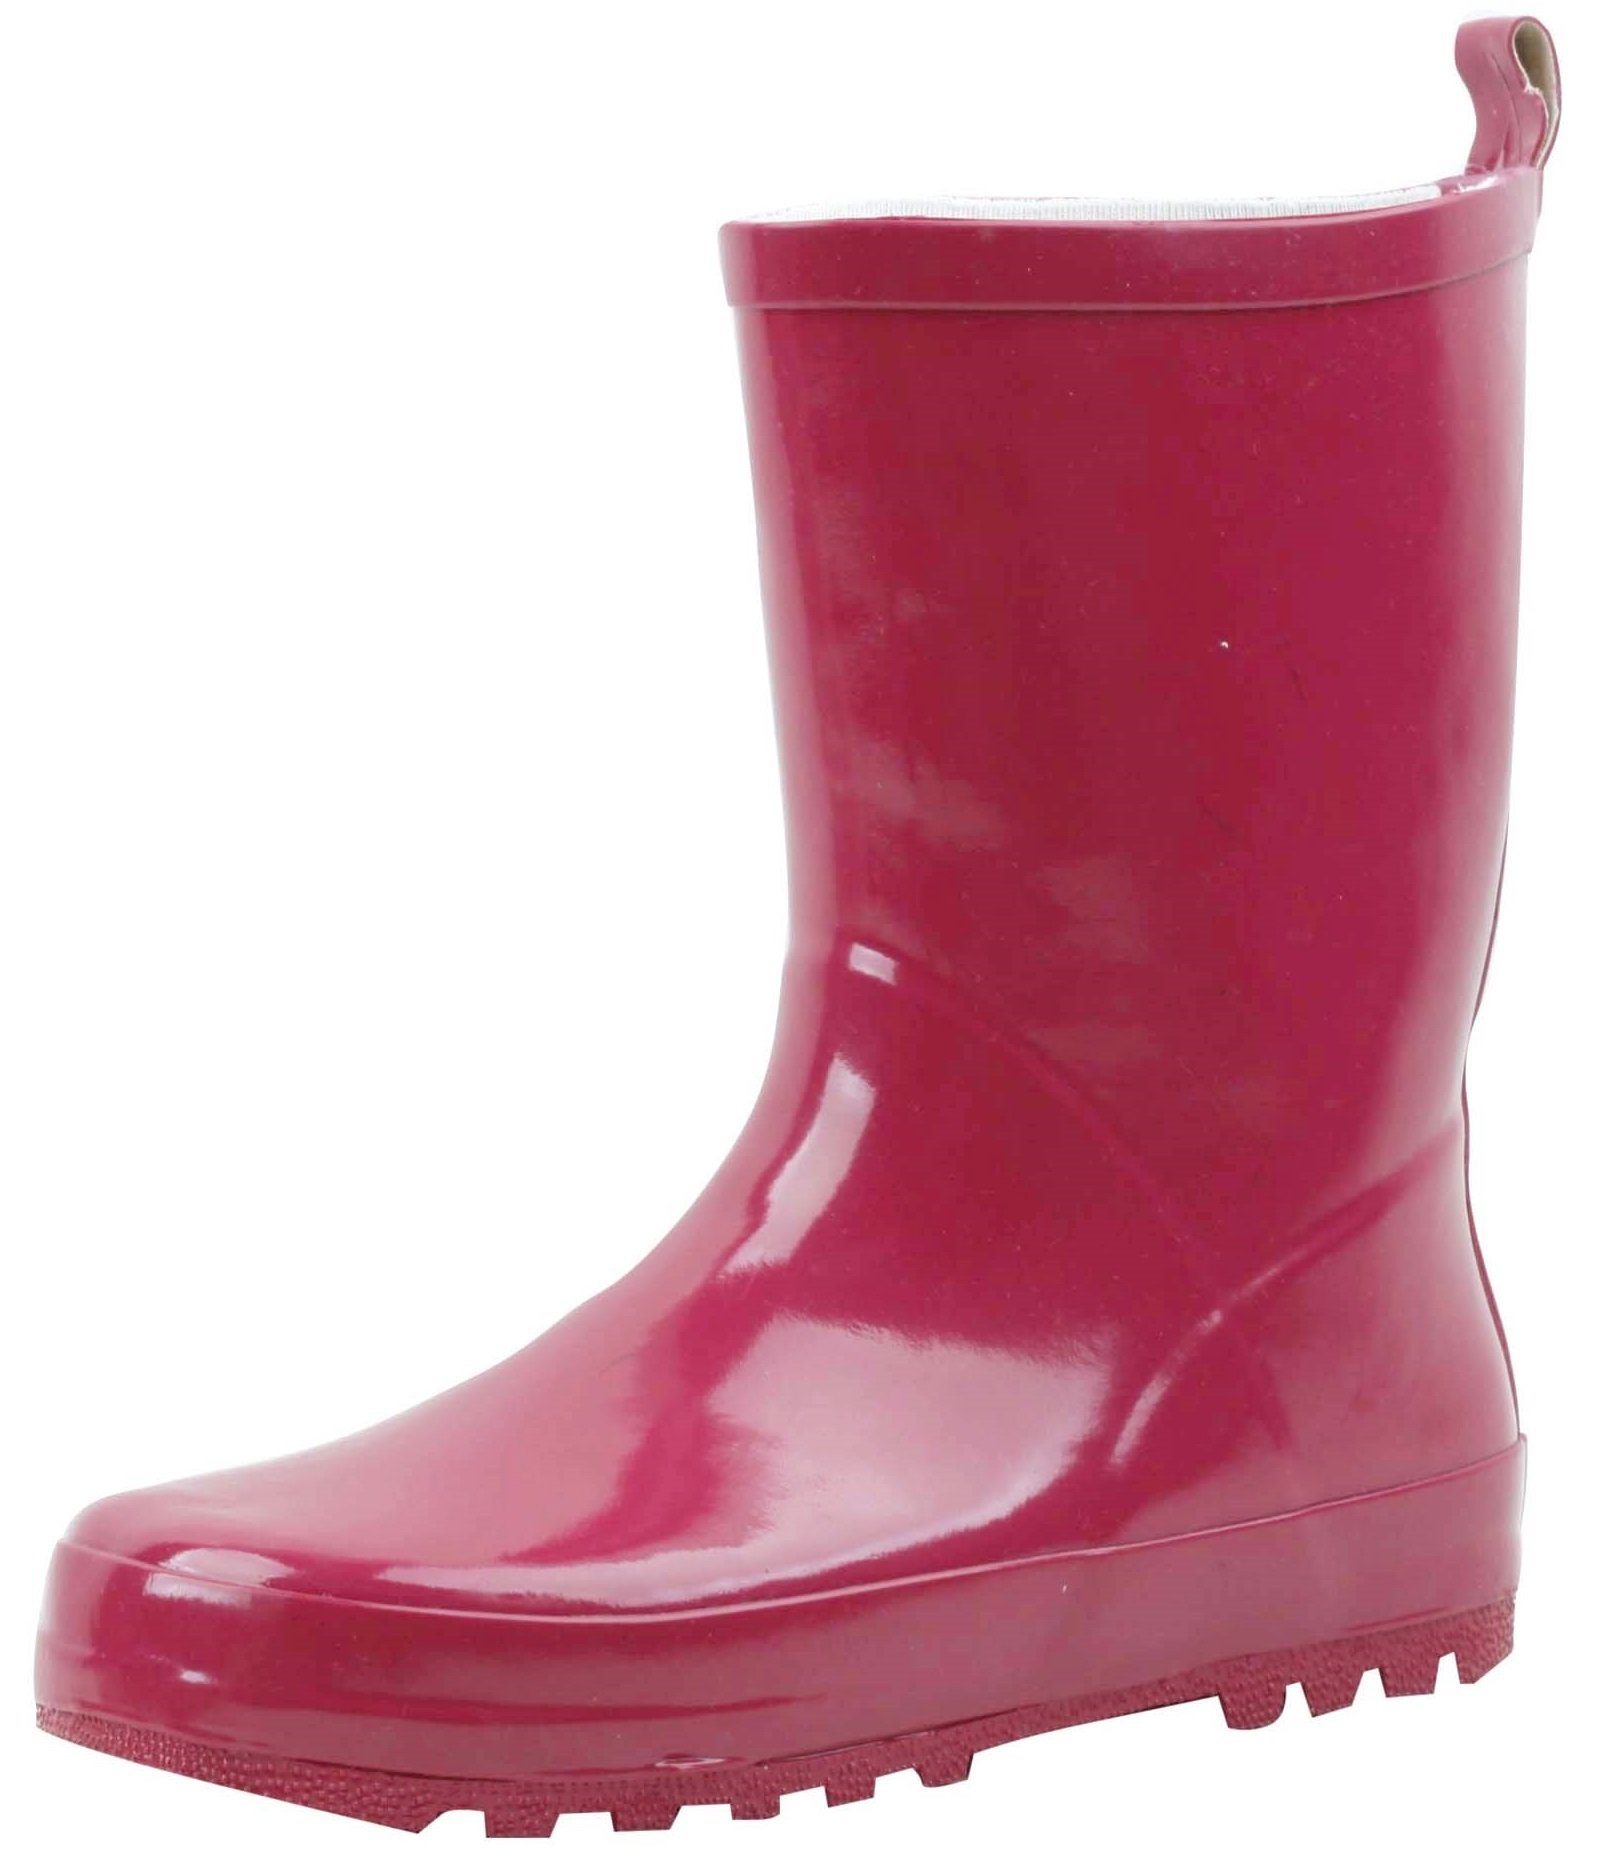 StarBay Brand New Kid's Rubber Rainboots Available In 3 Styles